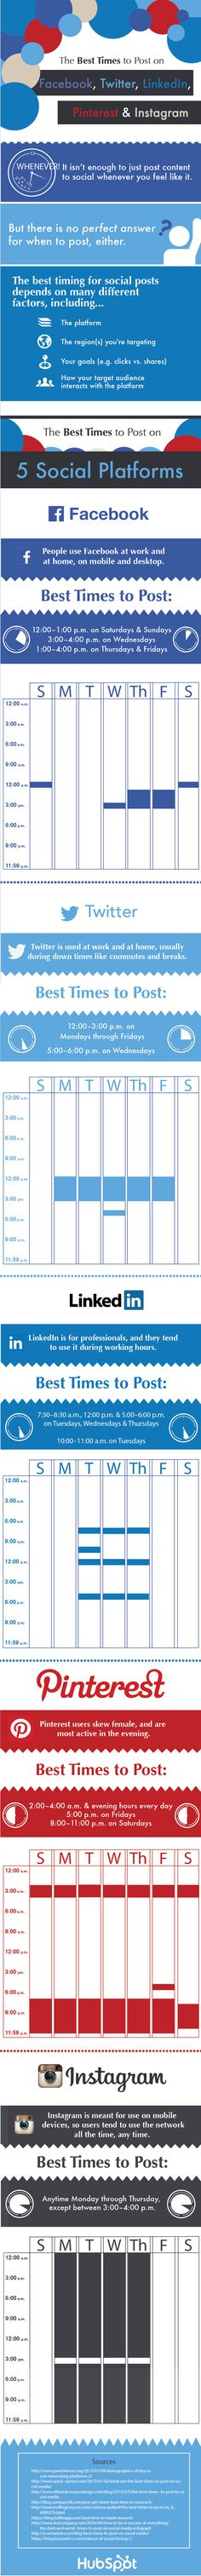 The Best Times to Post on Facebook, Twitter, LinkedIn & Other Social Media Sites [Infographic], via @HubSpot